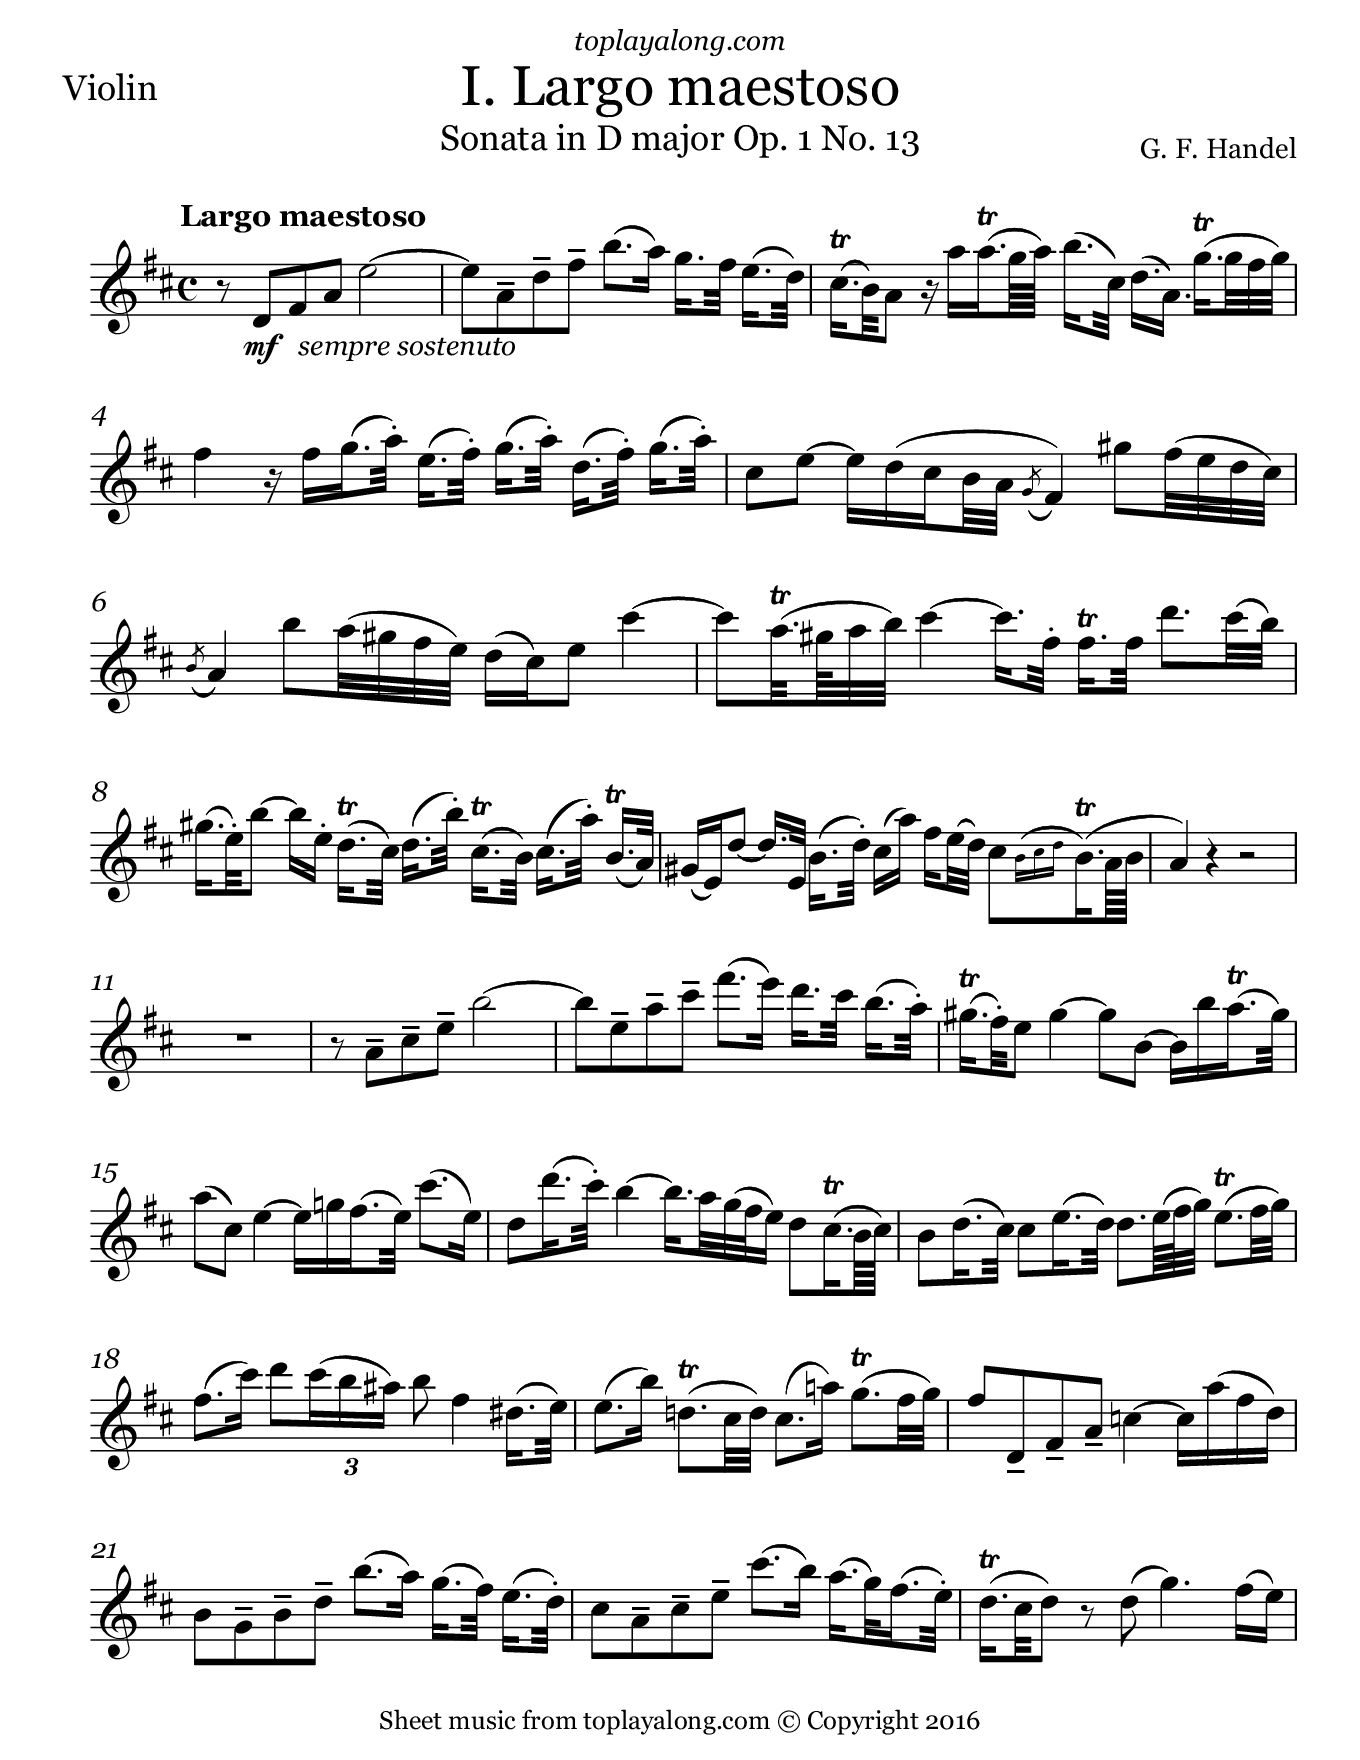 Violin sonata in D major (I. Largo) by Handel. Sheet music for Violin, page 1.